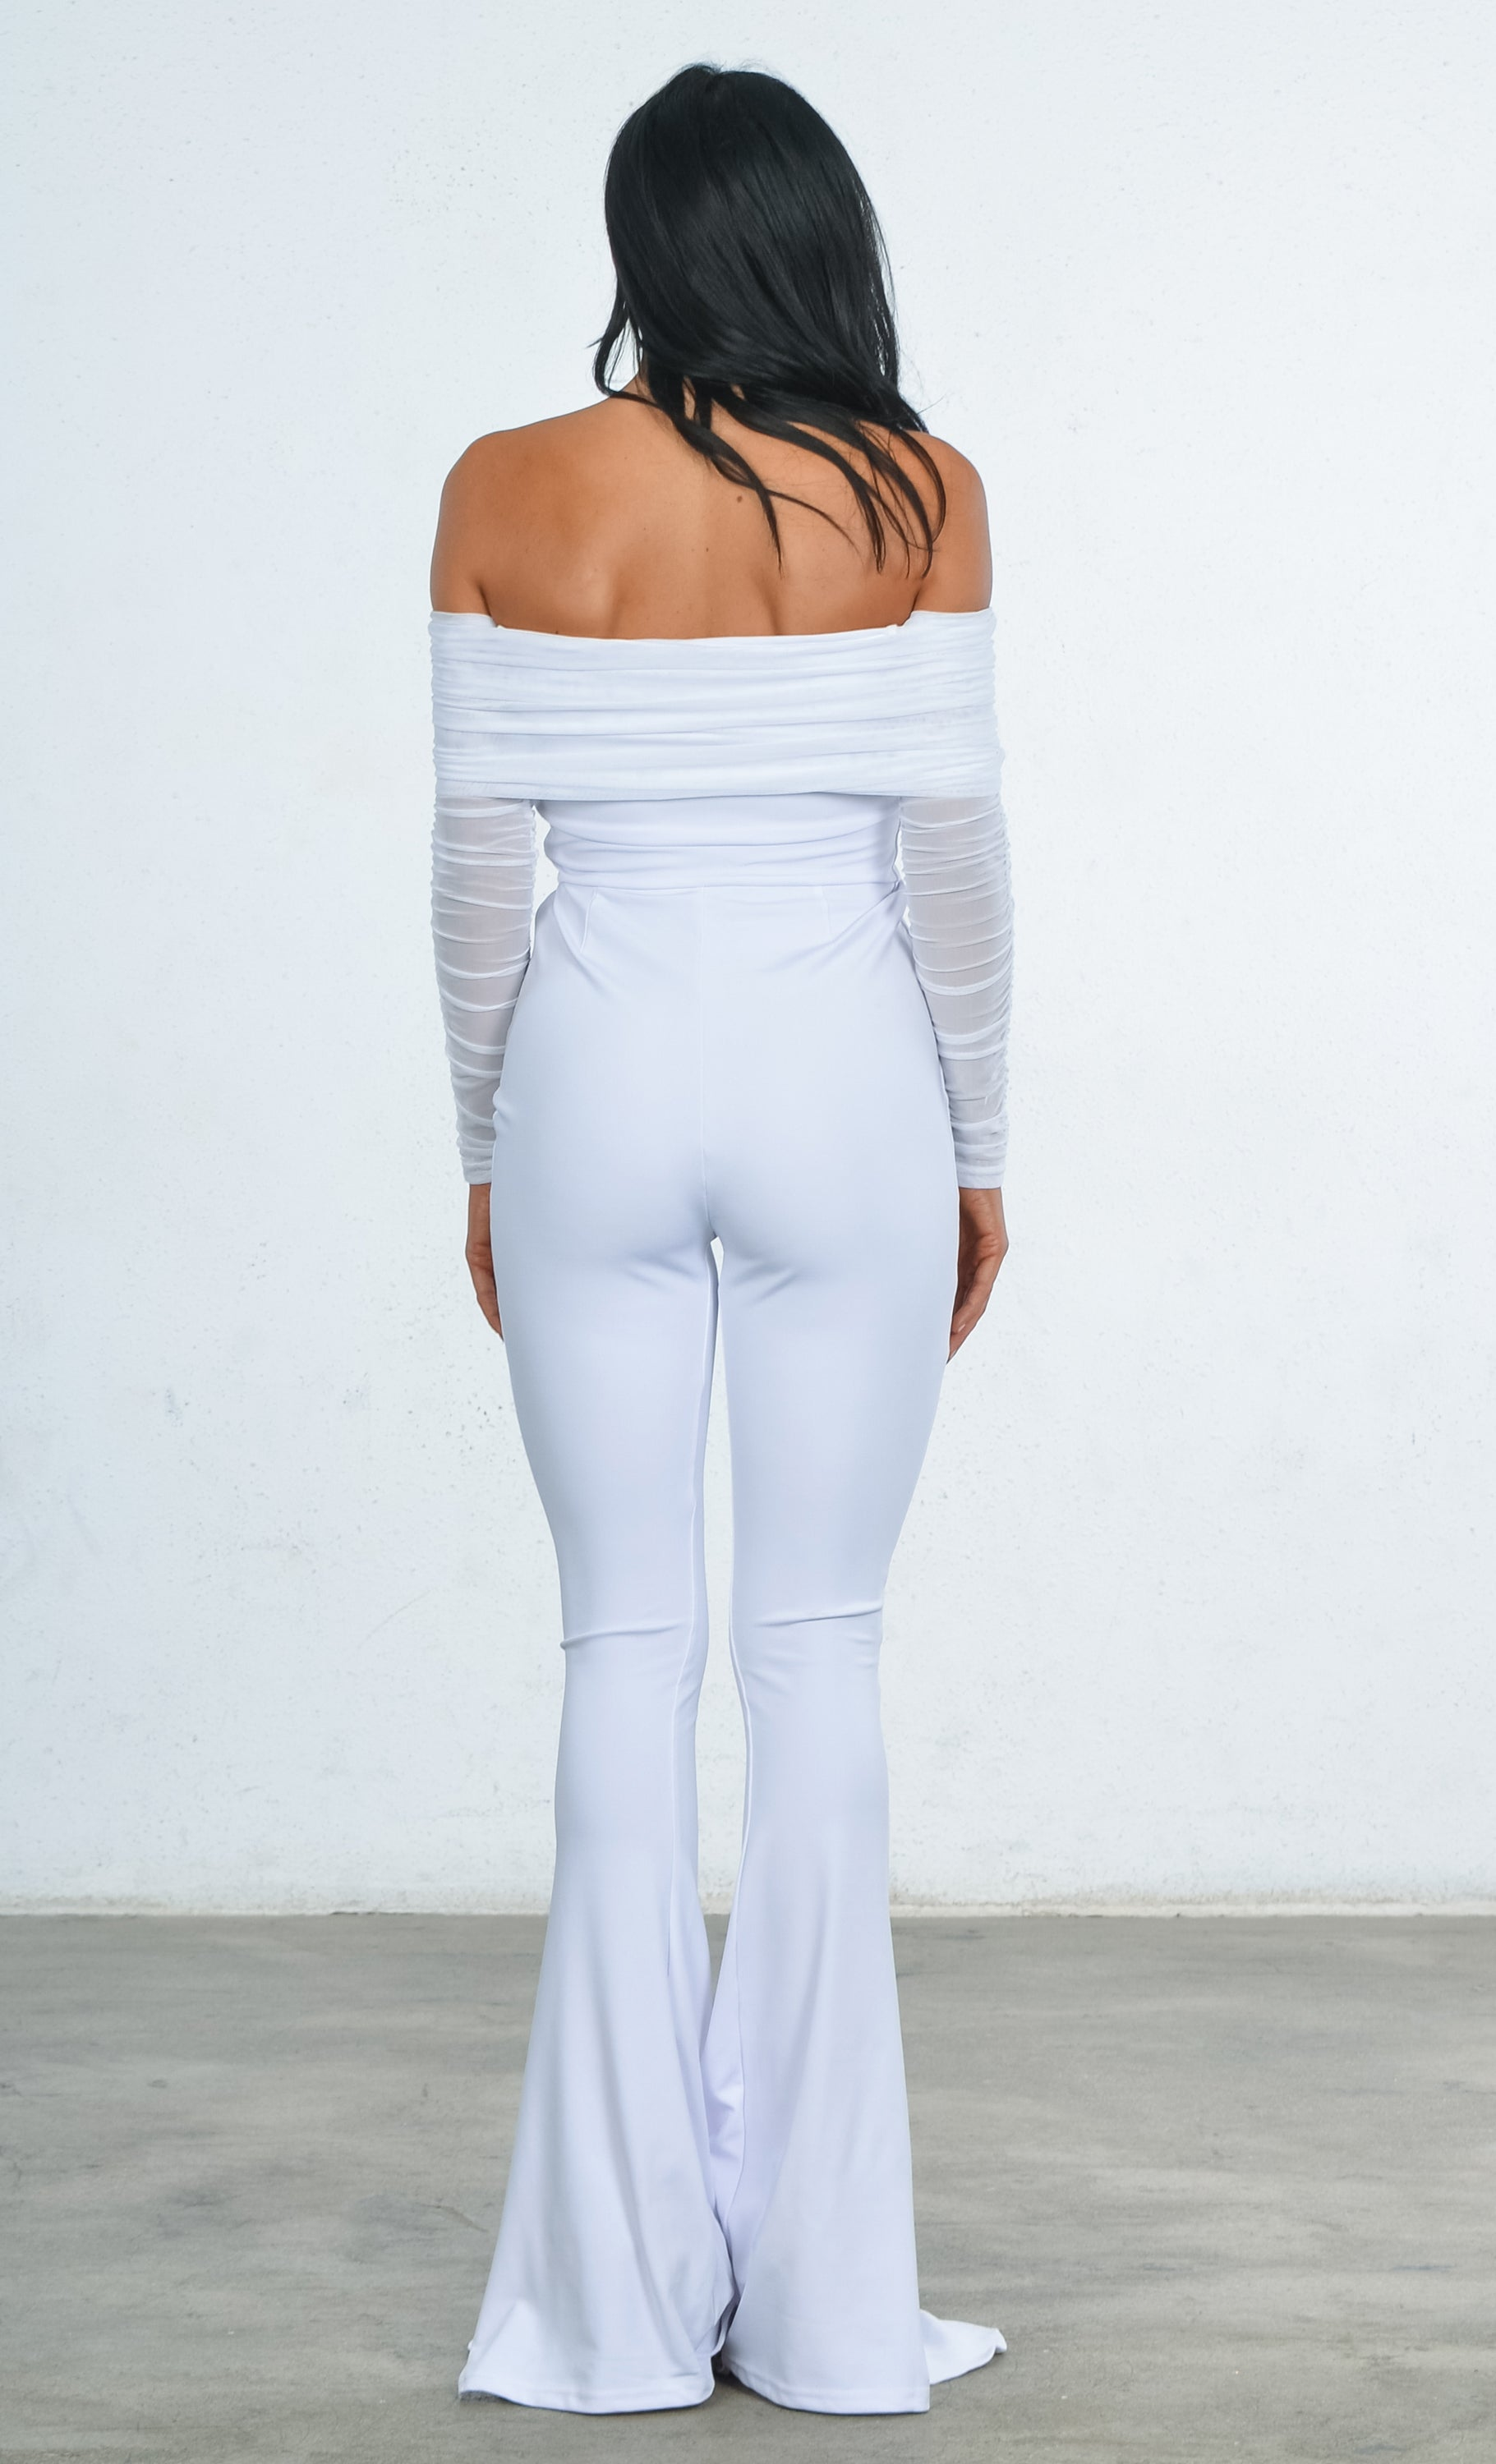 3d429603122 Indie XO Heavenly Bodies White Sheer Mesh Long Sleeve Off the Shoulder  Stretch Flare Train Leg